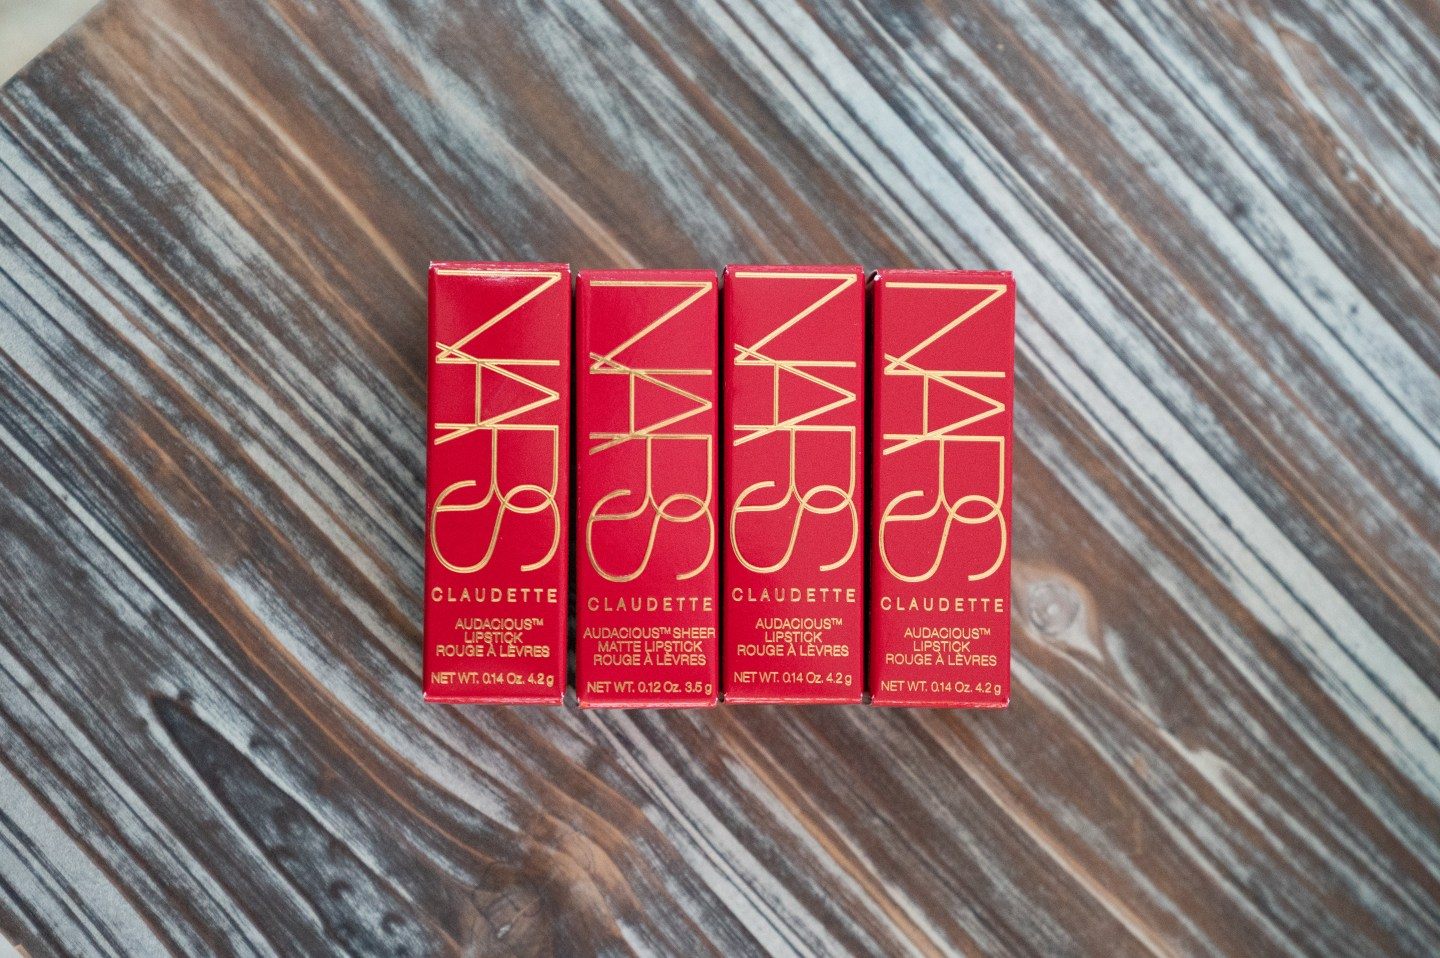 nars claudette collection audacious lipsticks